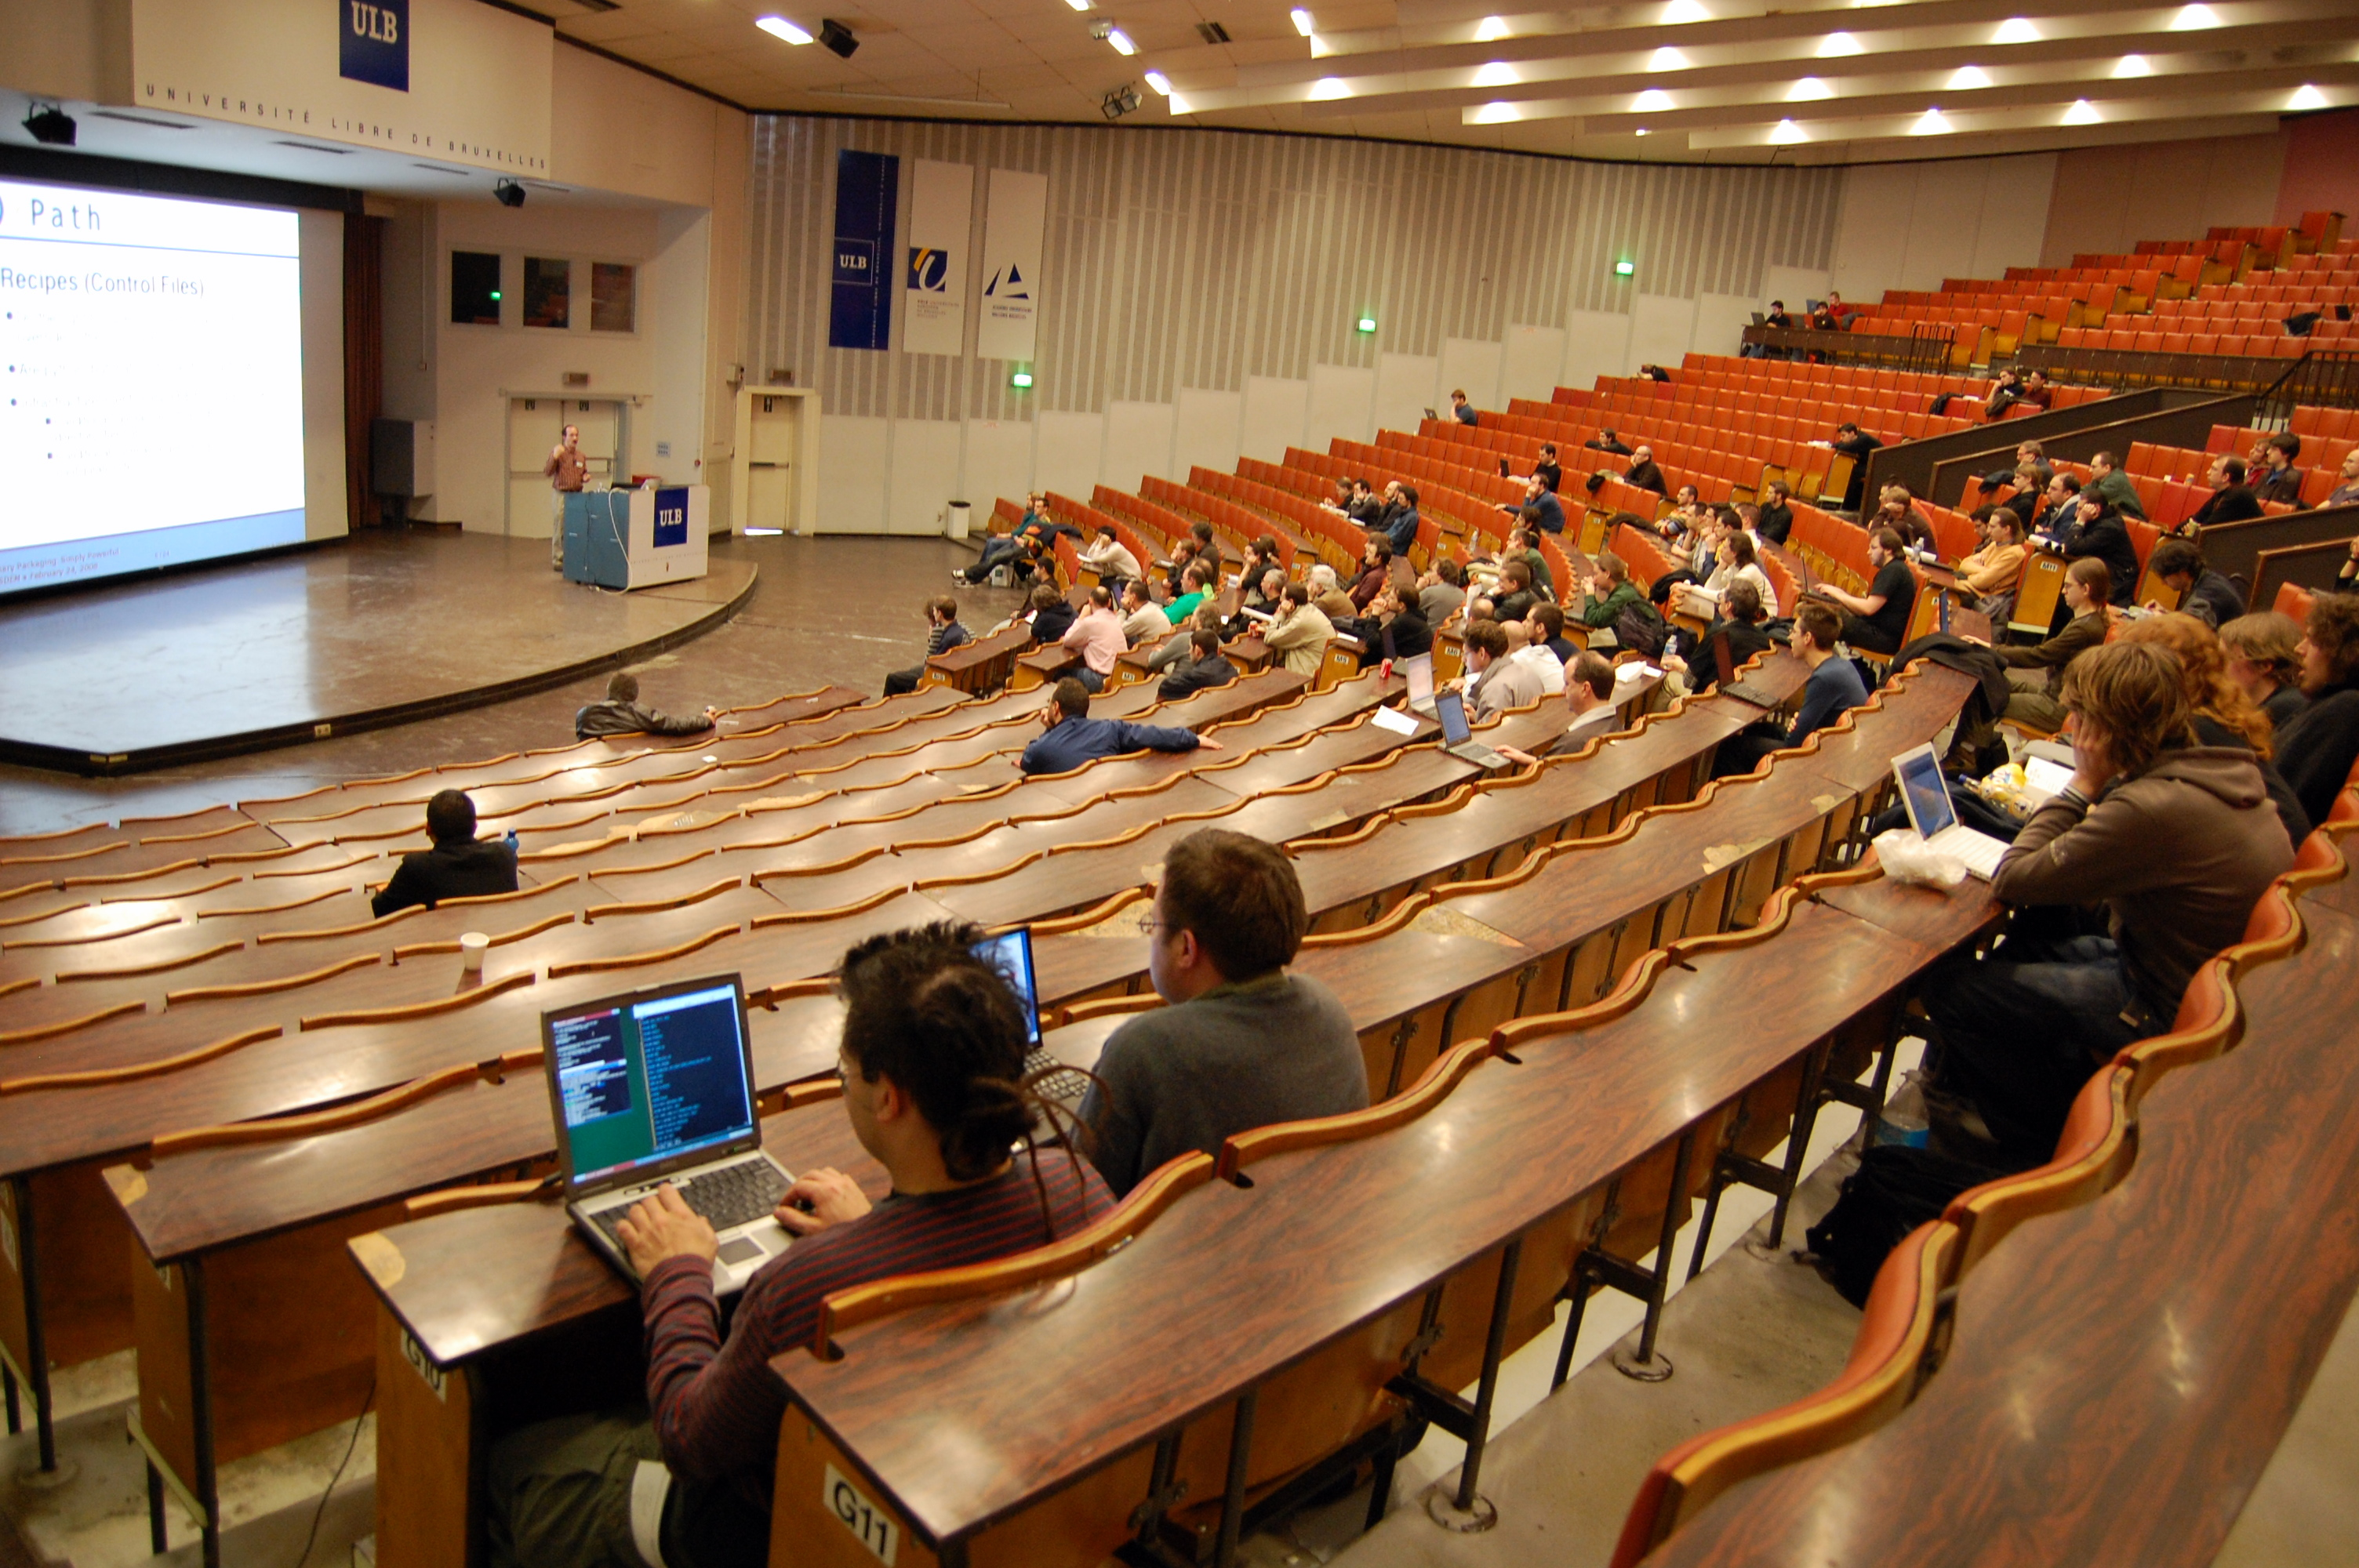 File:FOSDEM 2008 Main lecture theatre.jpg - Wikimedia Commons